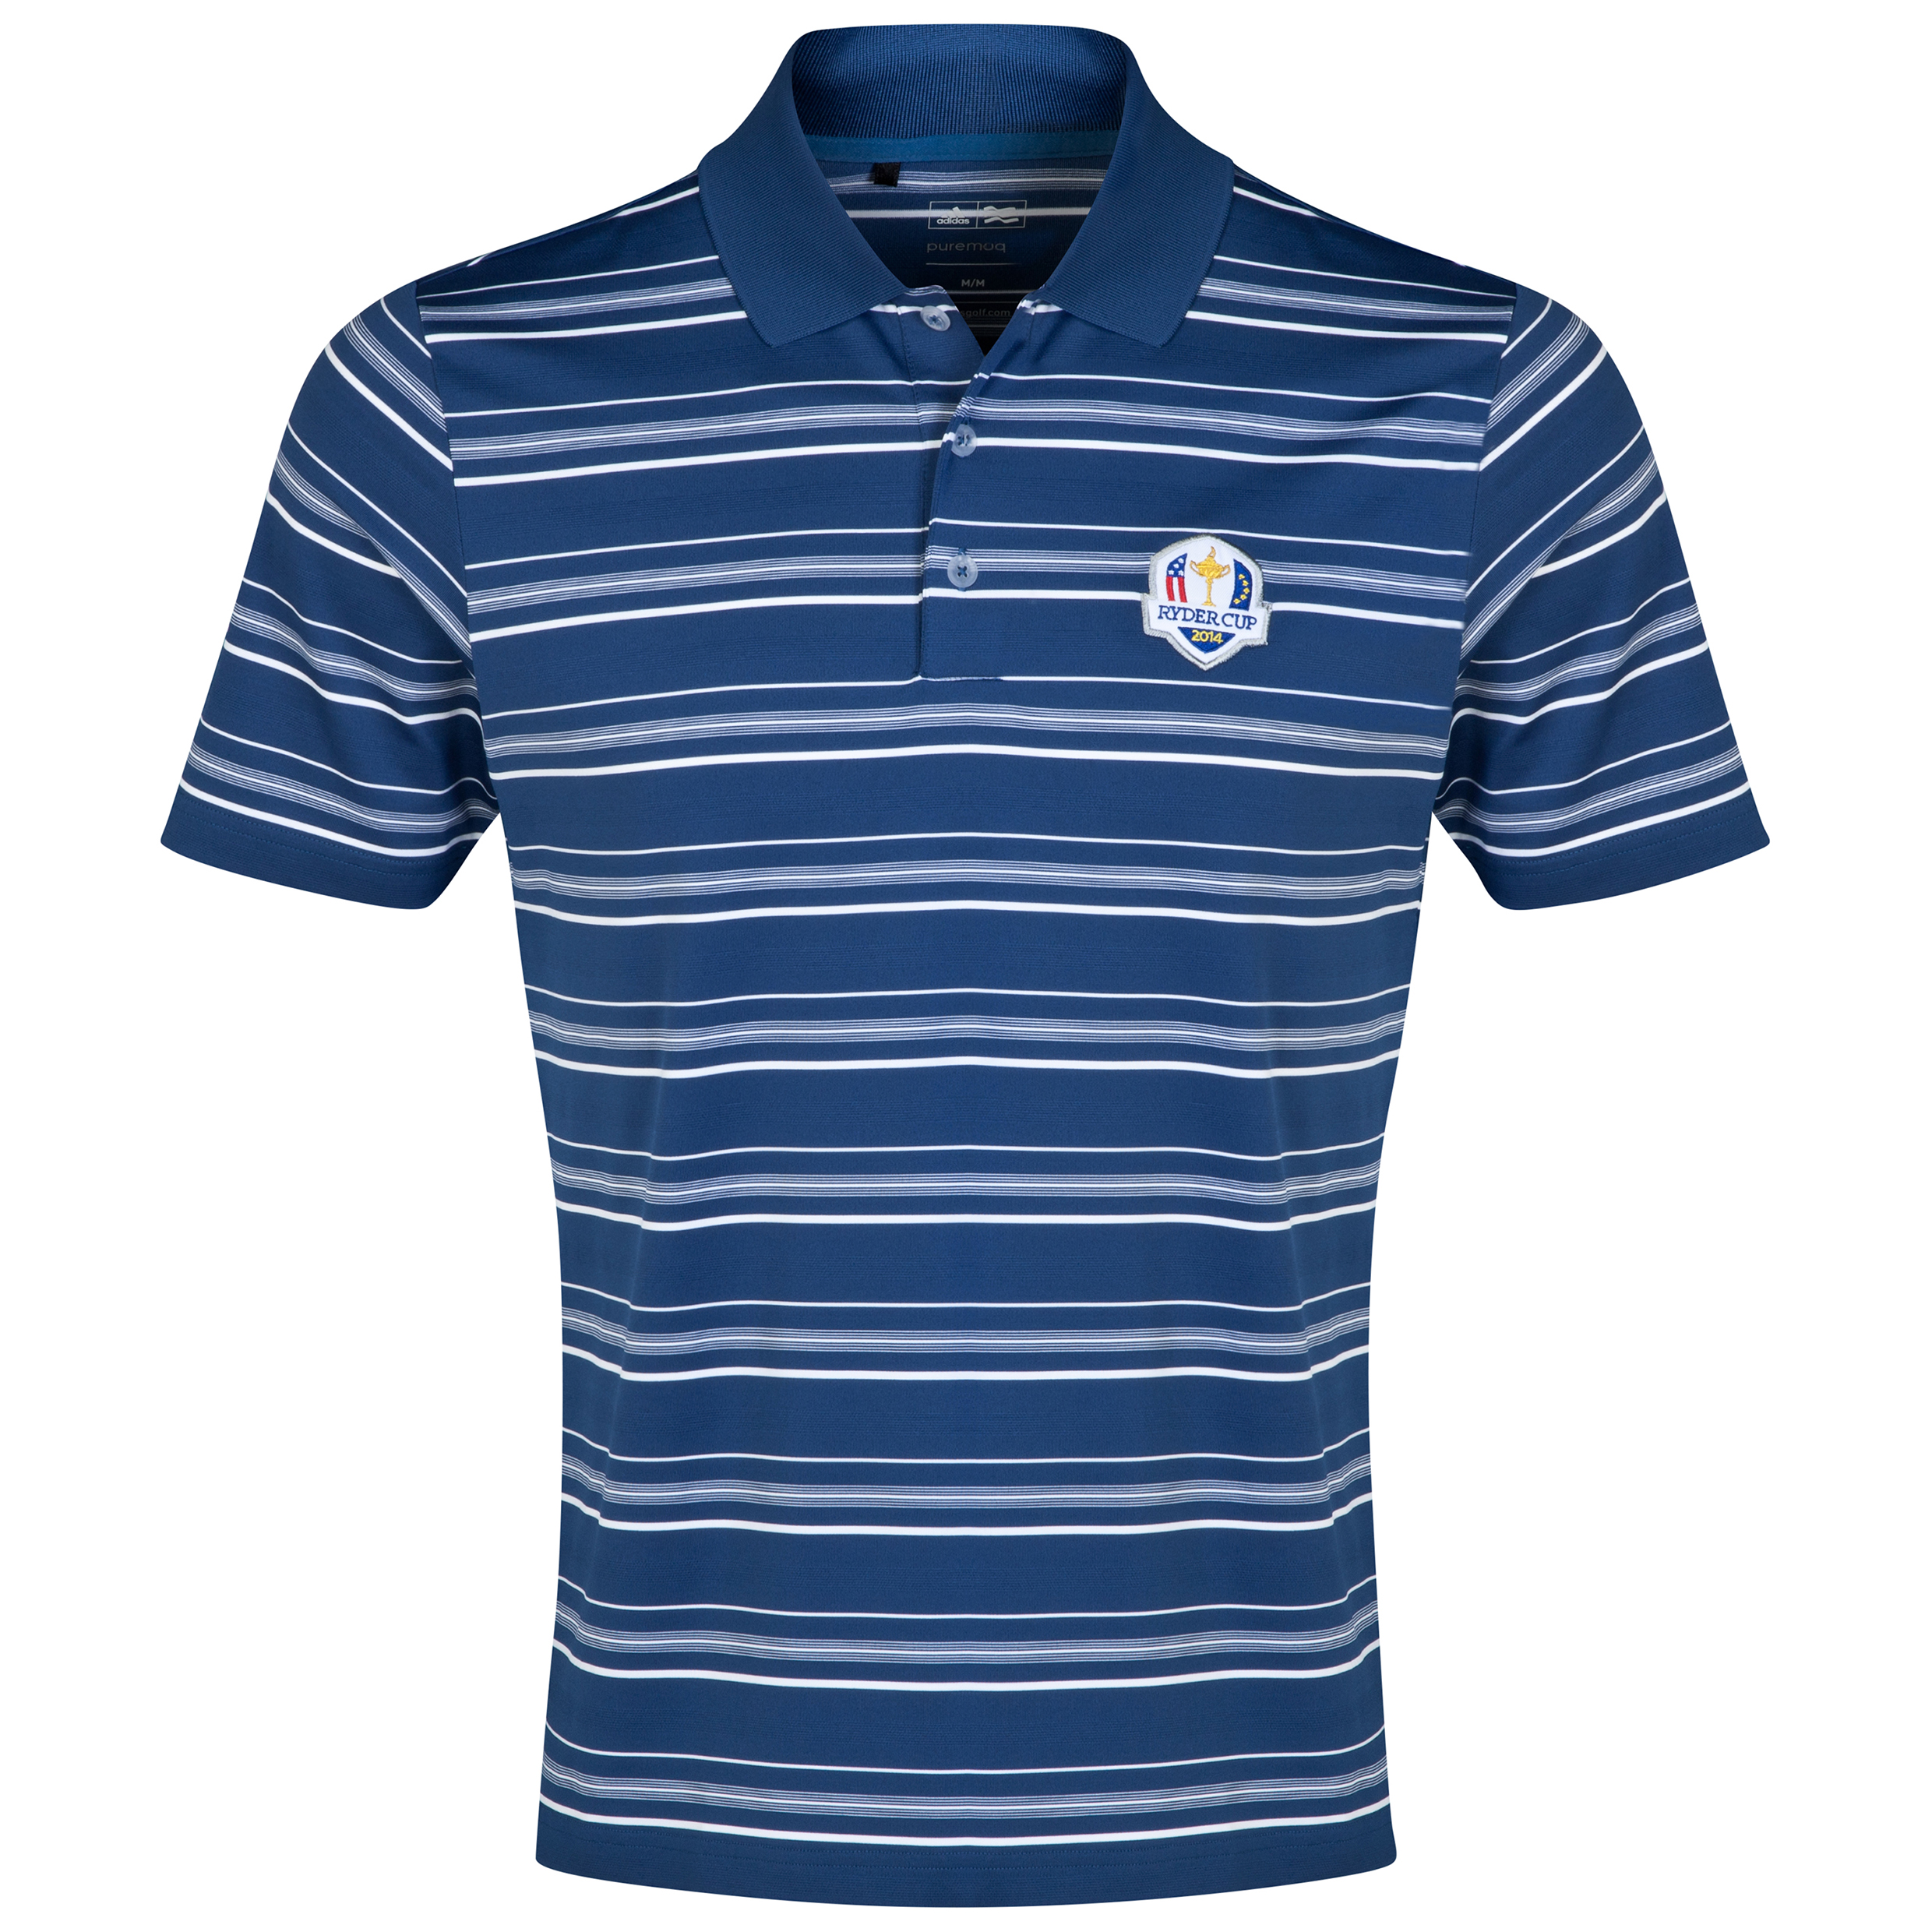 The 2014 Ryder Cup ClimaLite 2-Colour Stripe Polo Navy